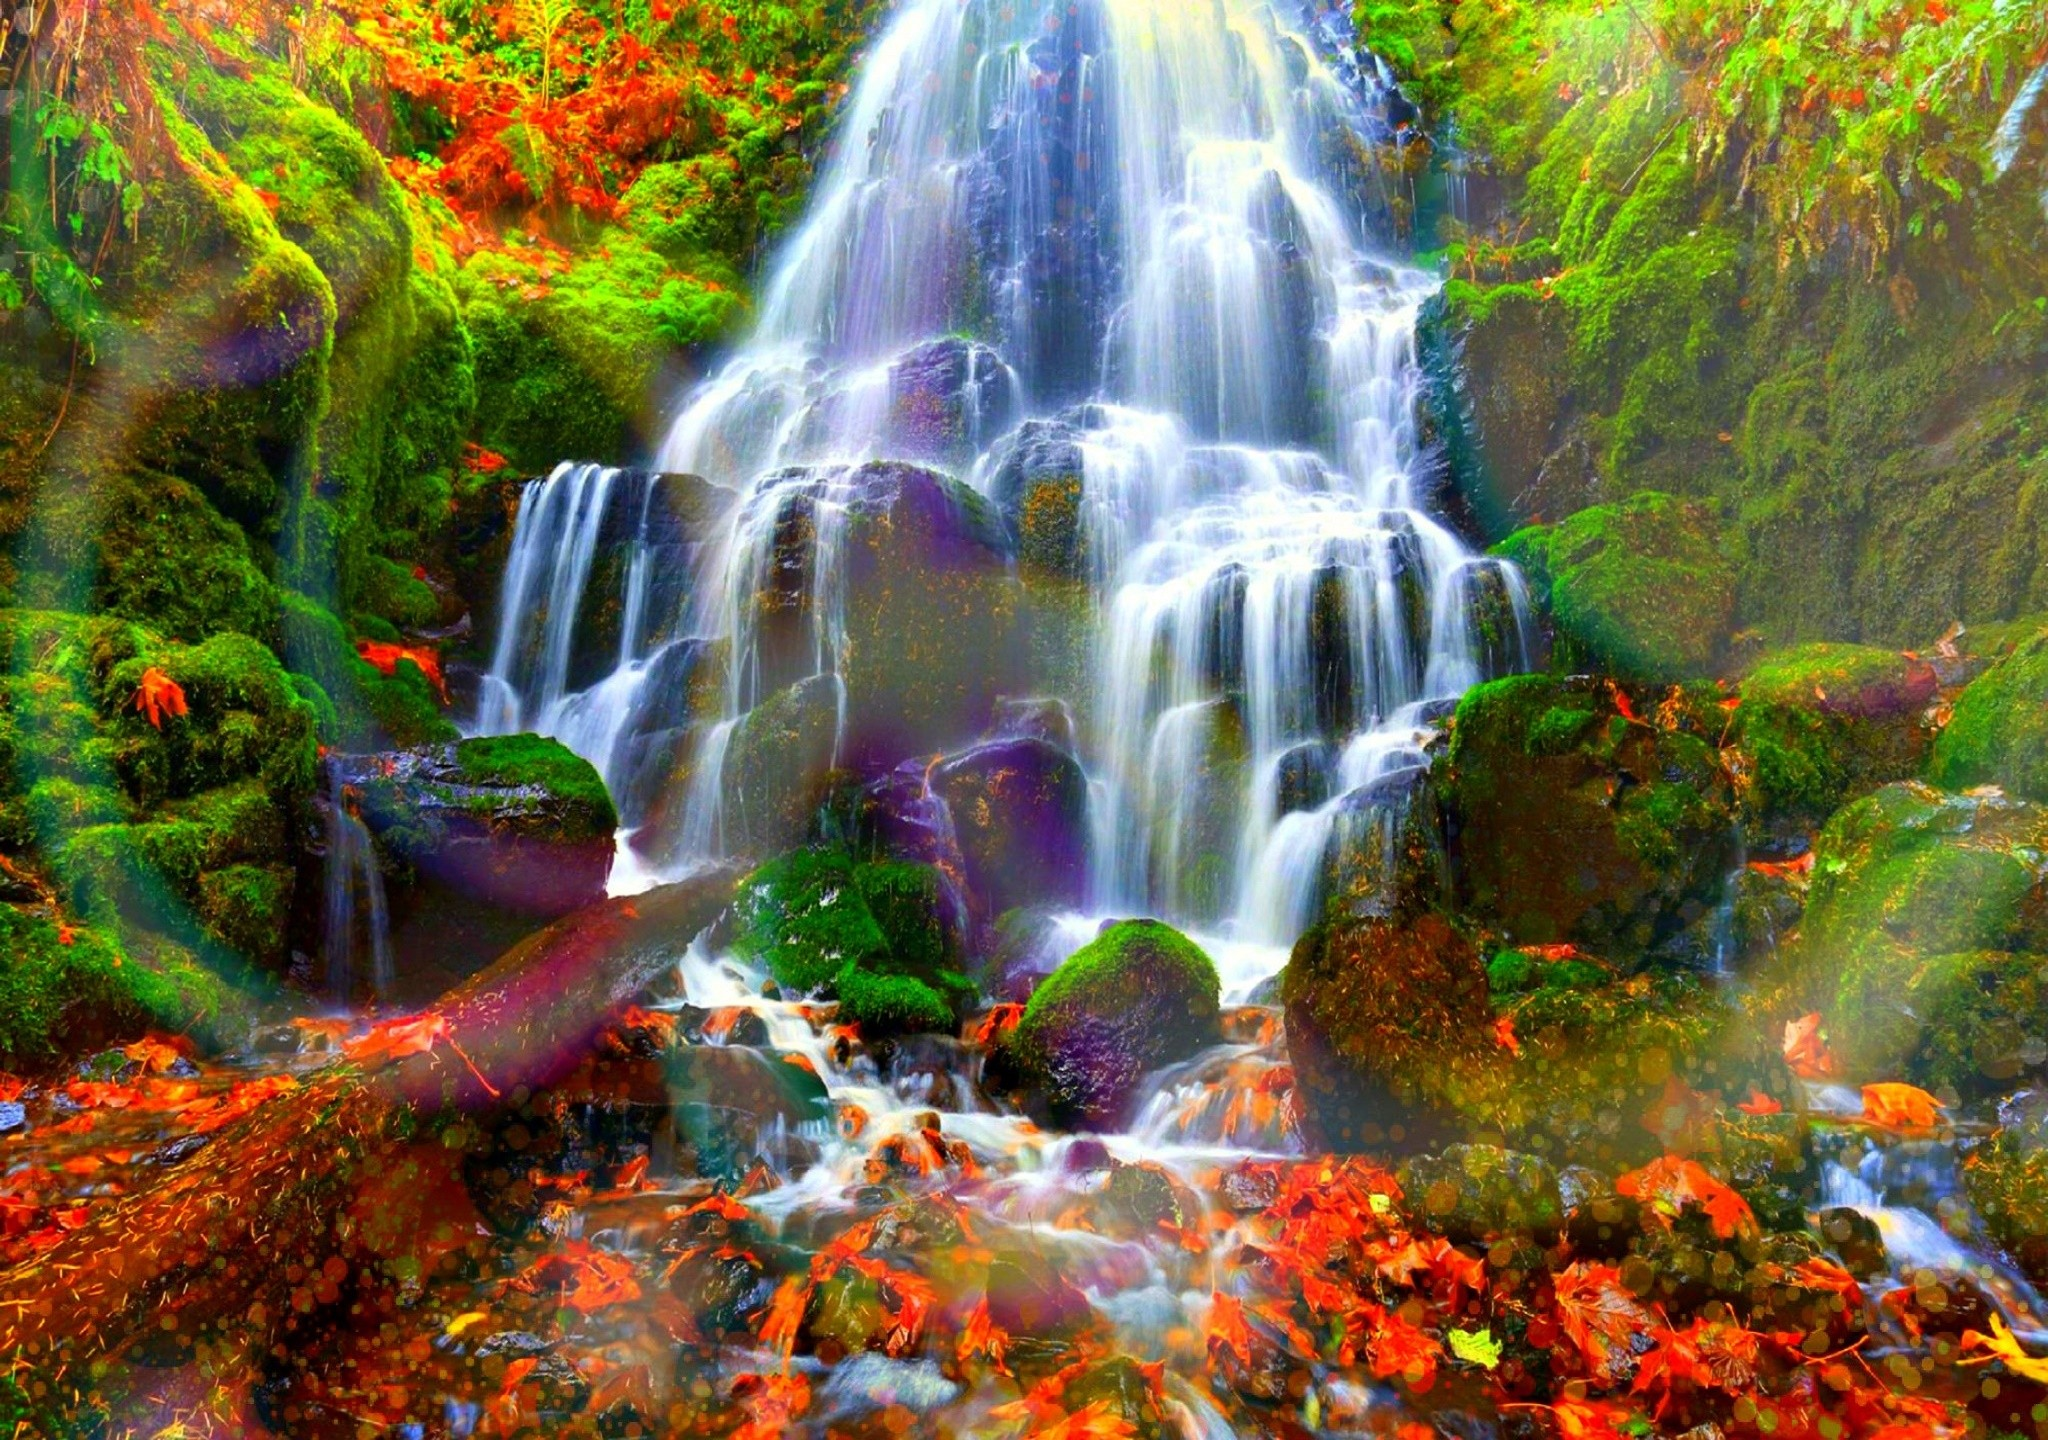 Autumn Forest Water Cascades Full HD Wallpaper And